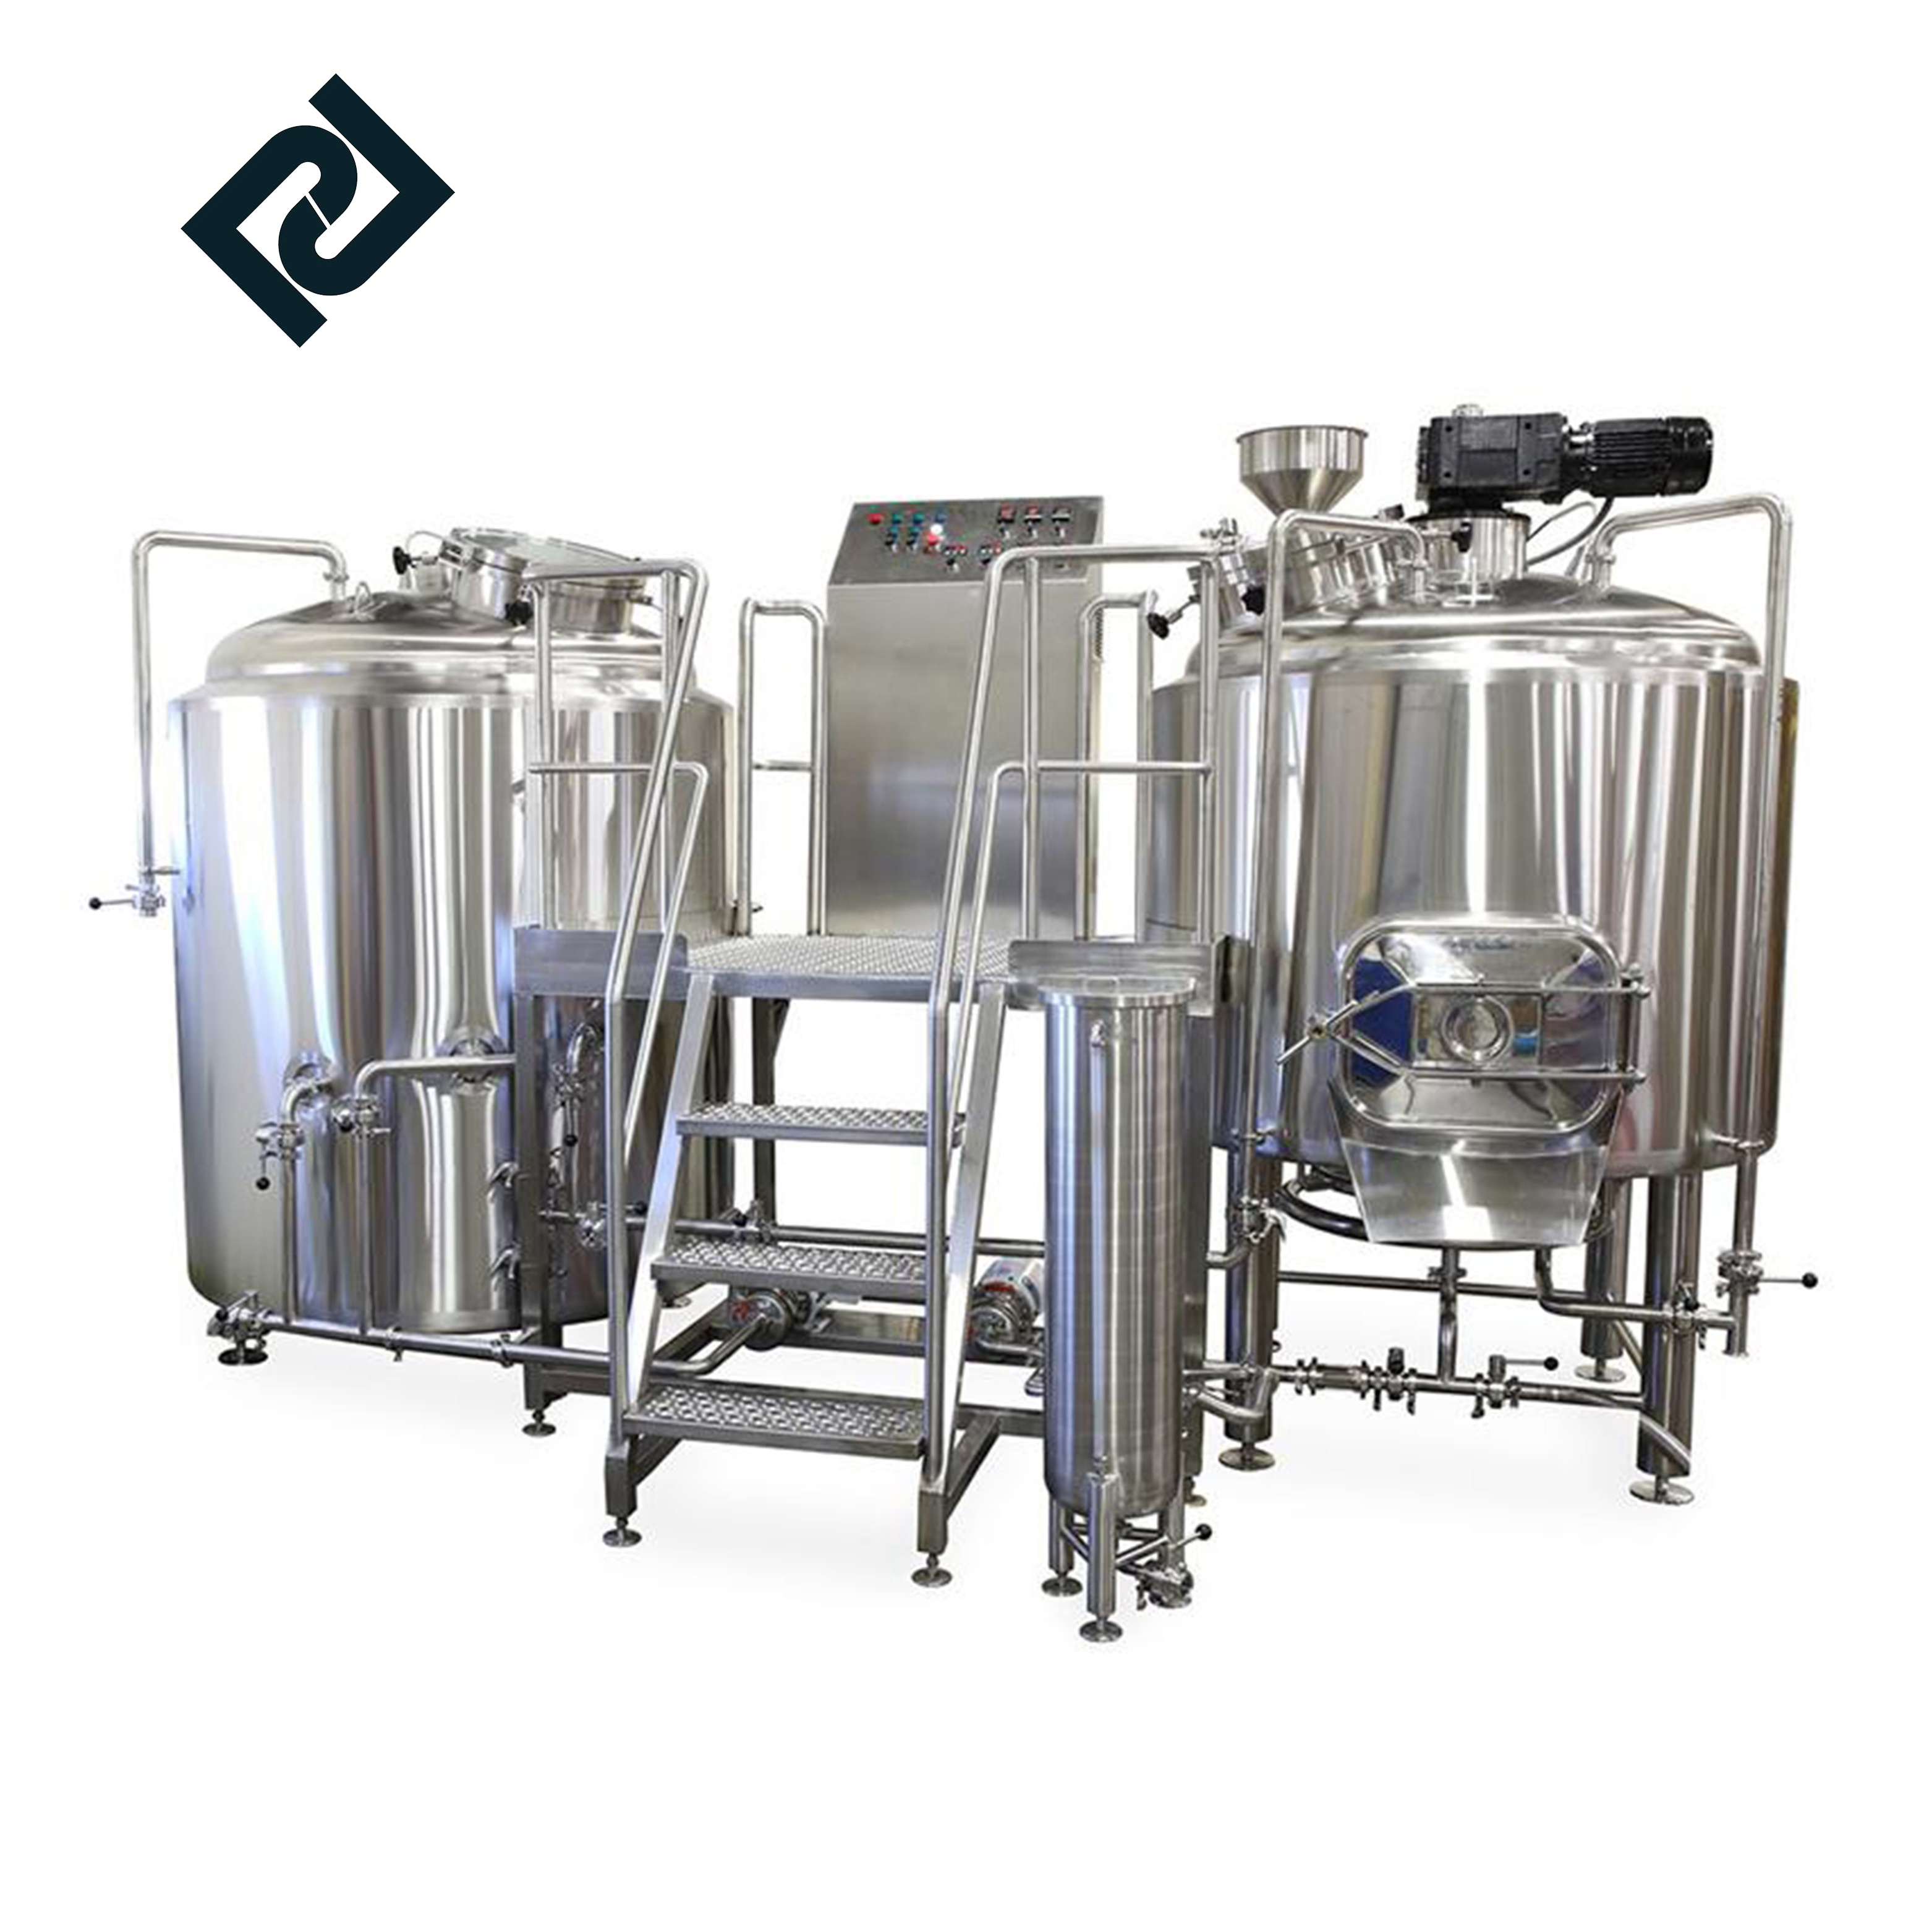 Automatic microbrewery turnkey beer production system1000l beer brewing equipment